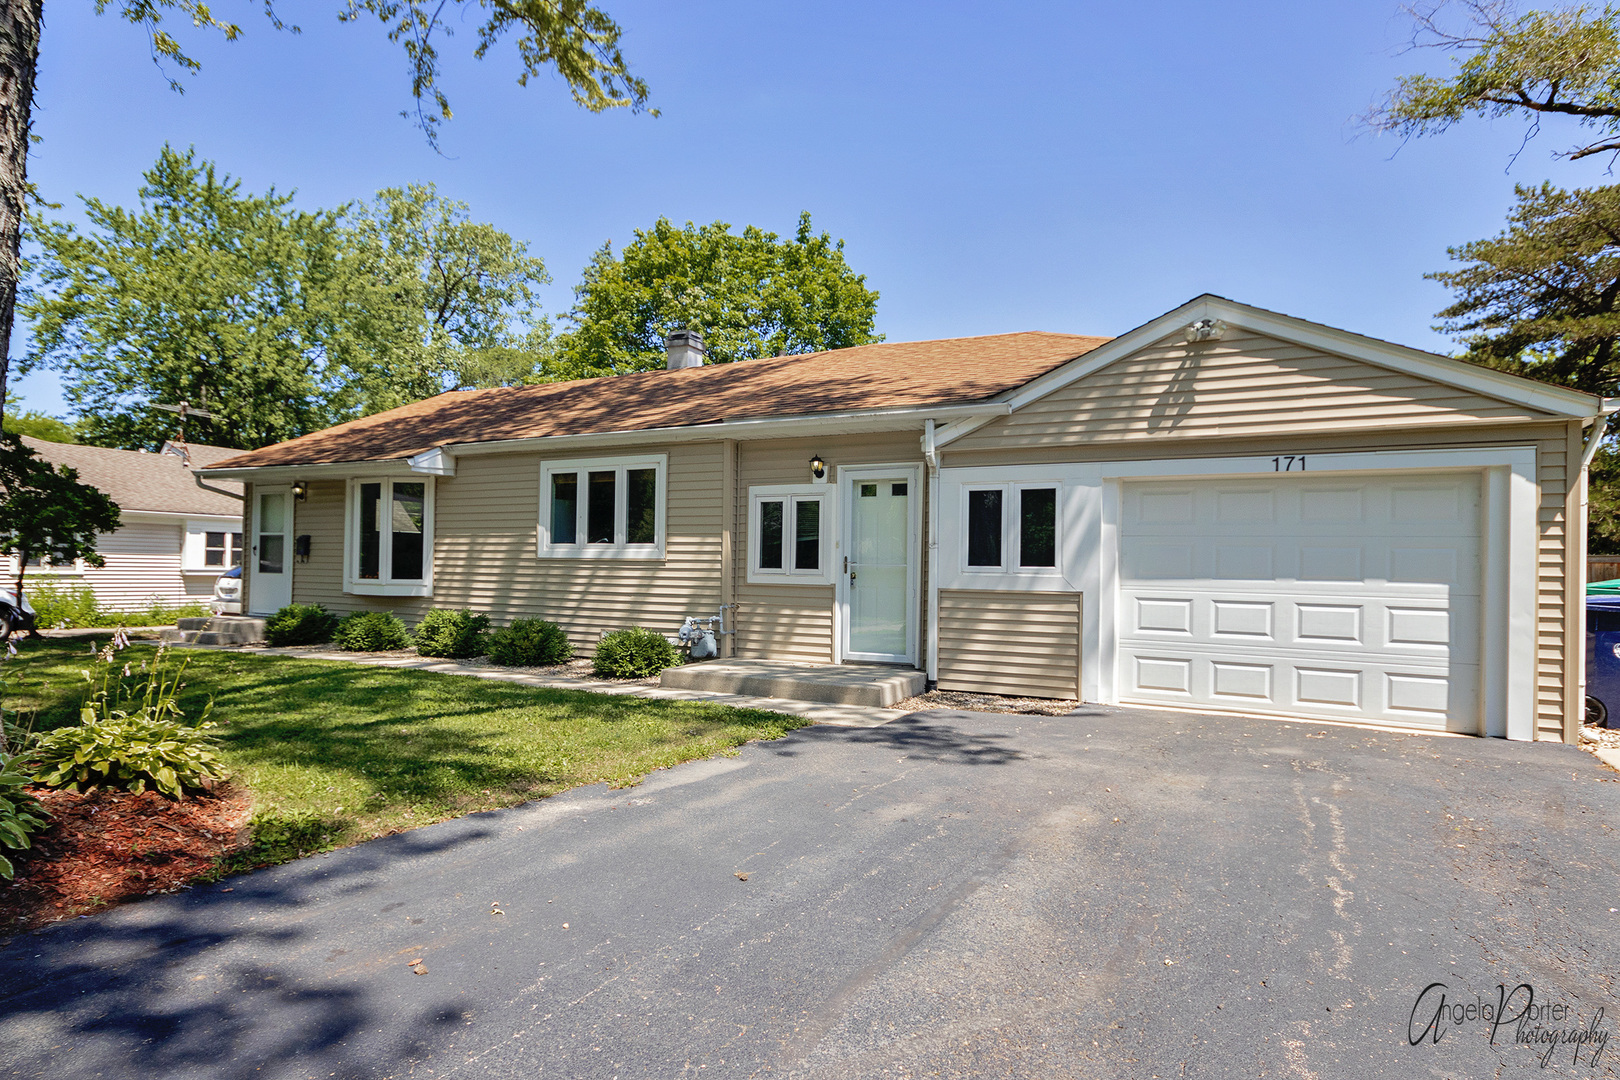 171 Pine Tree Row, Lake Zurich, Illinois